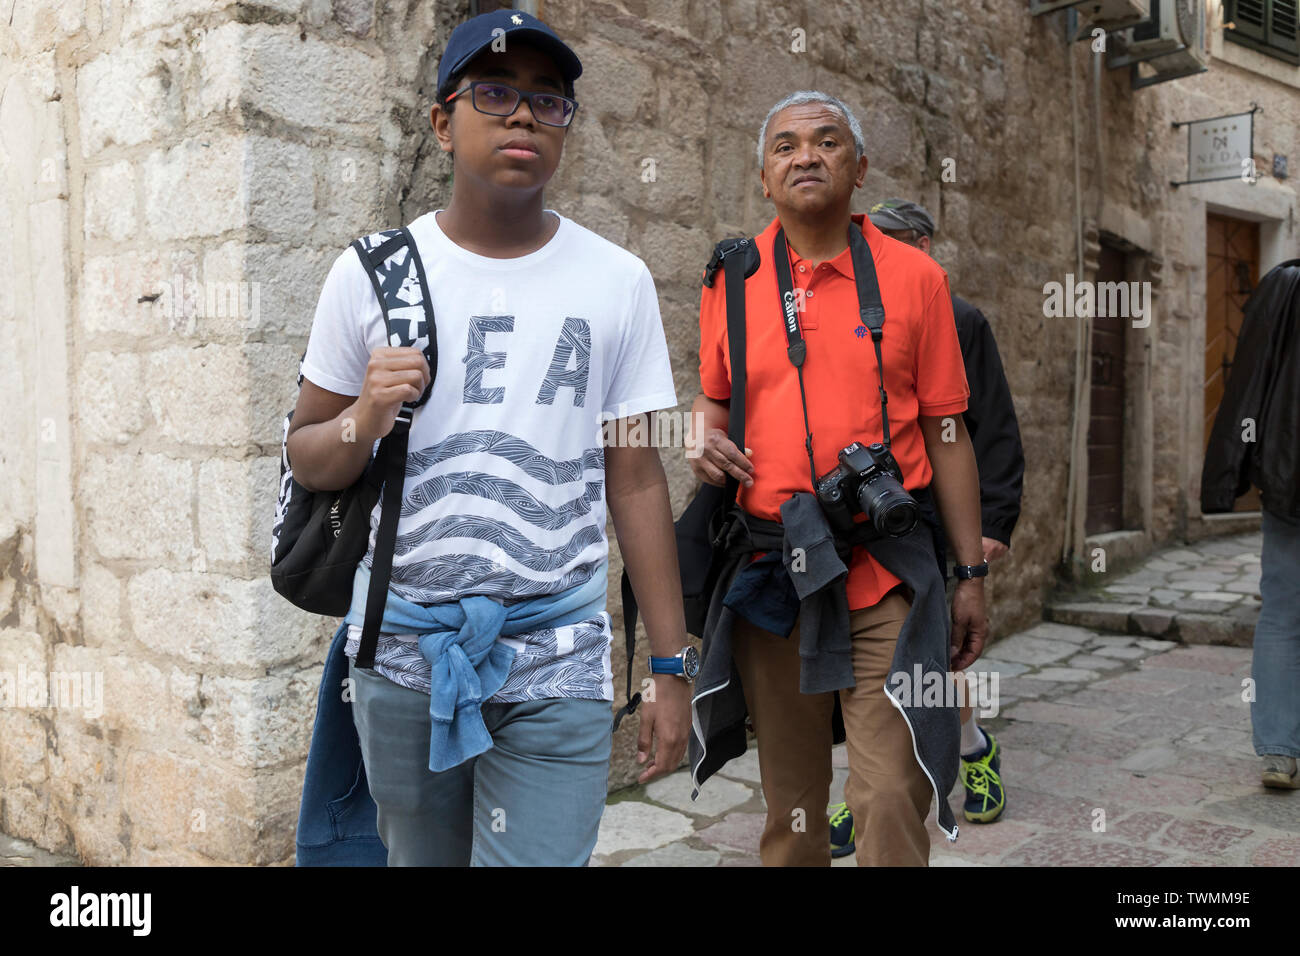 Montenegro, May 2nd 2019: Street photographer sightseeing of Kotor Old Town with teenage son - Stock Image